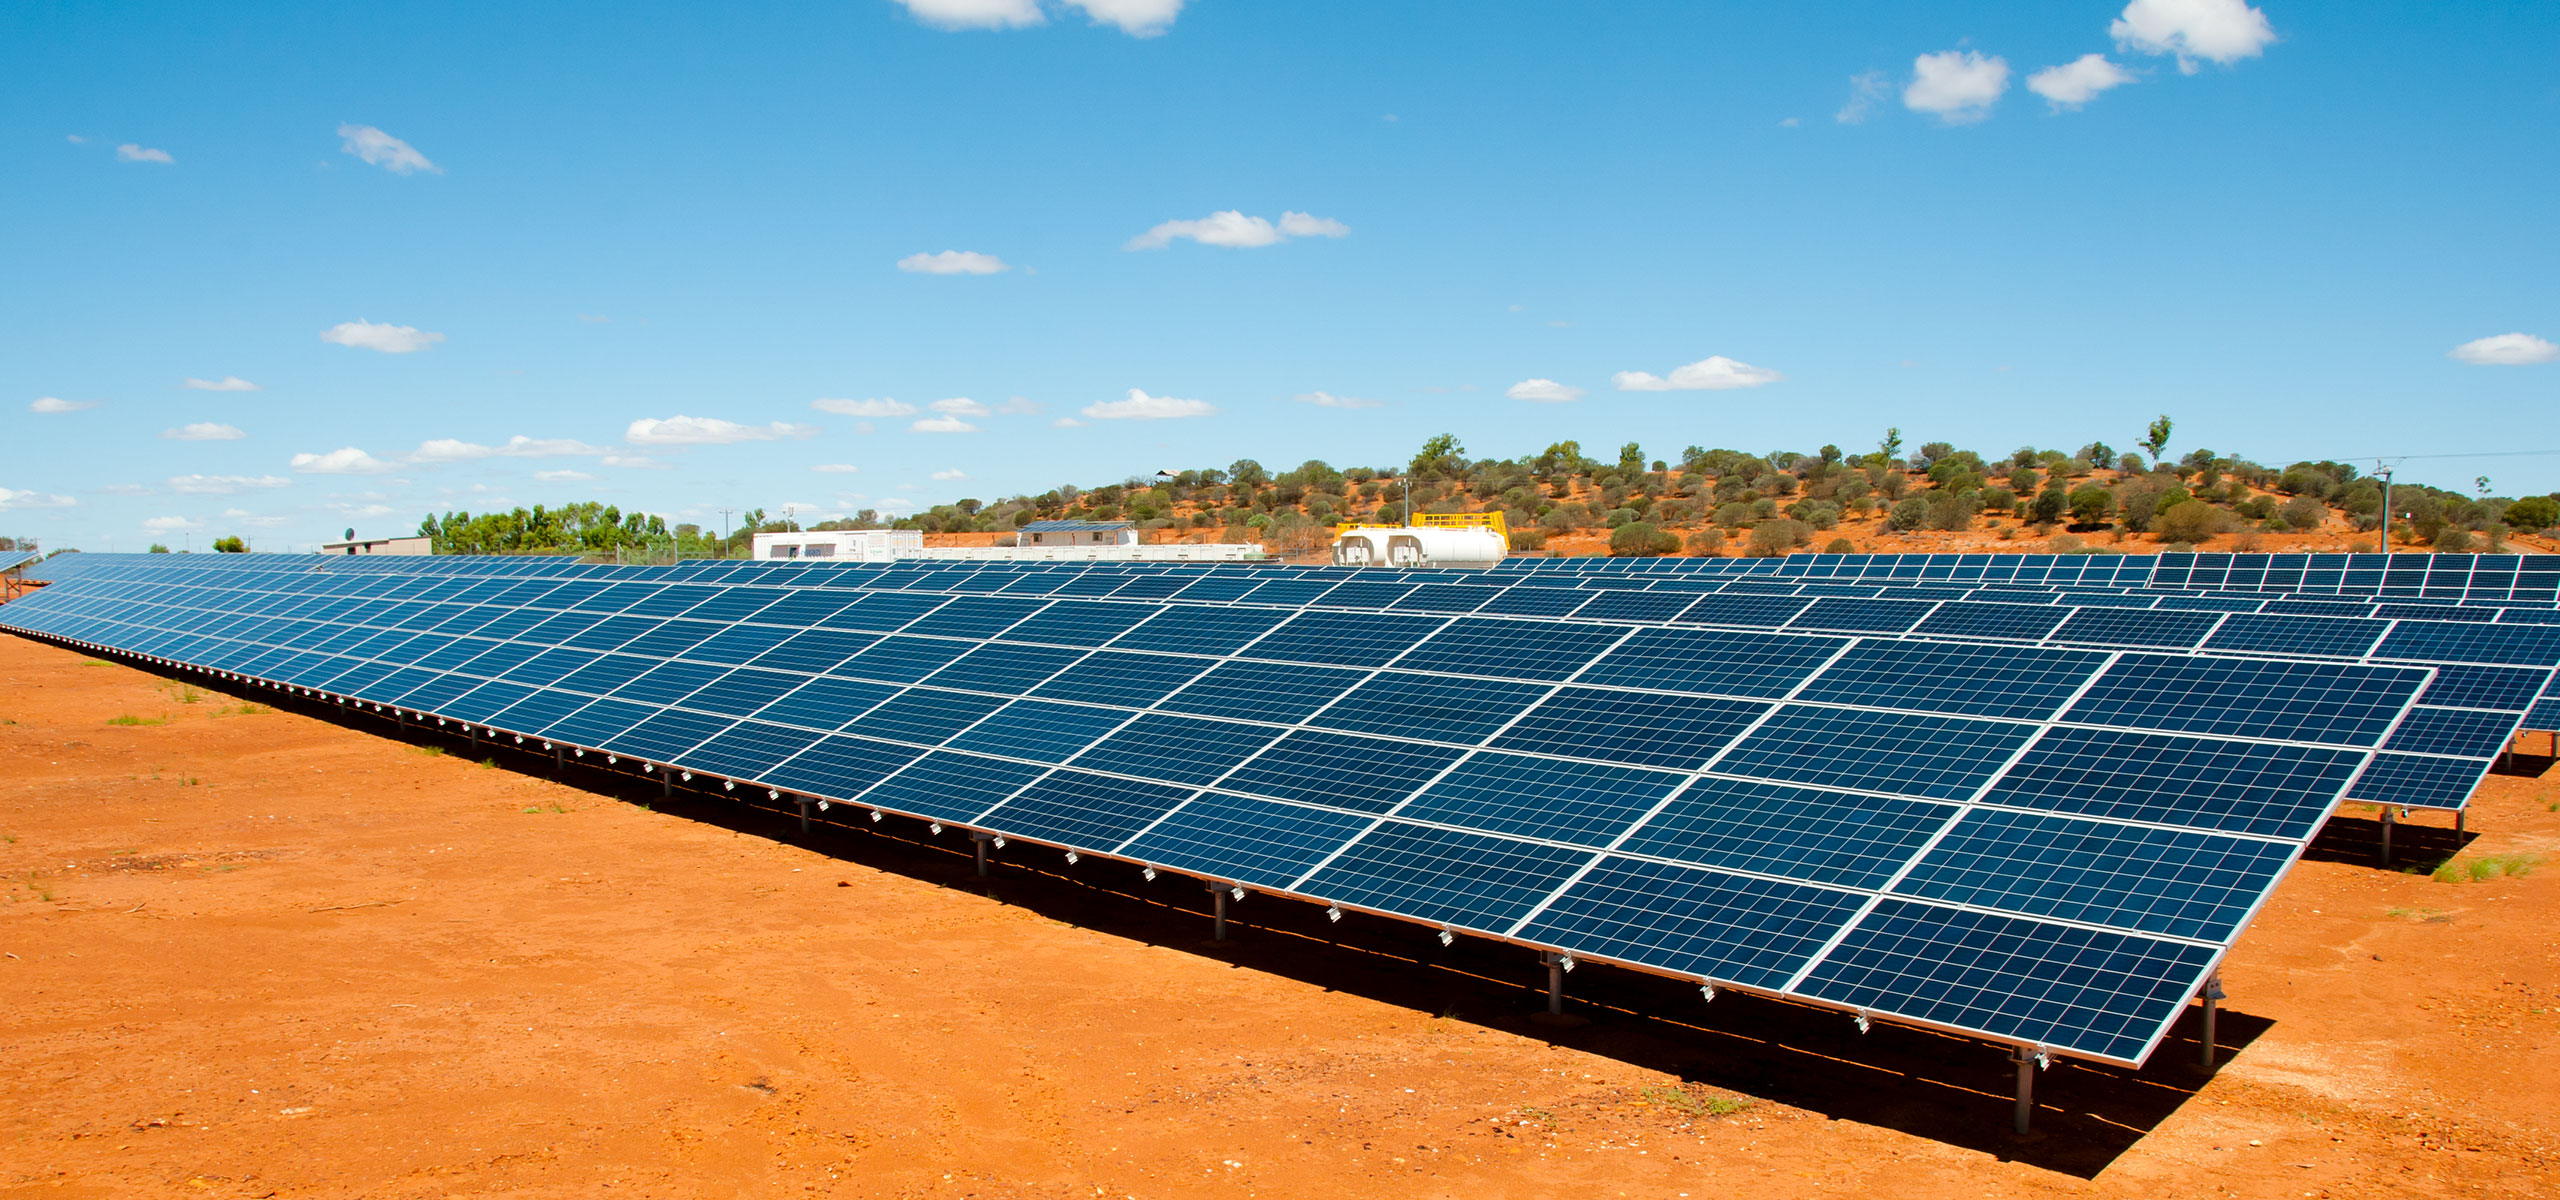 Solar panels and red dirt